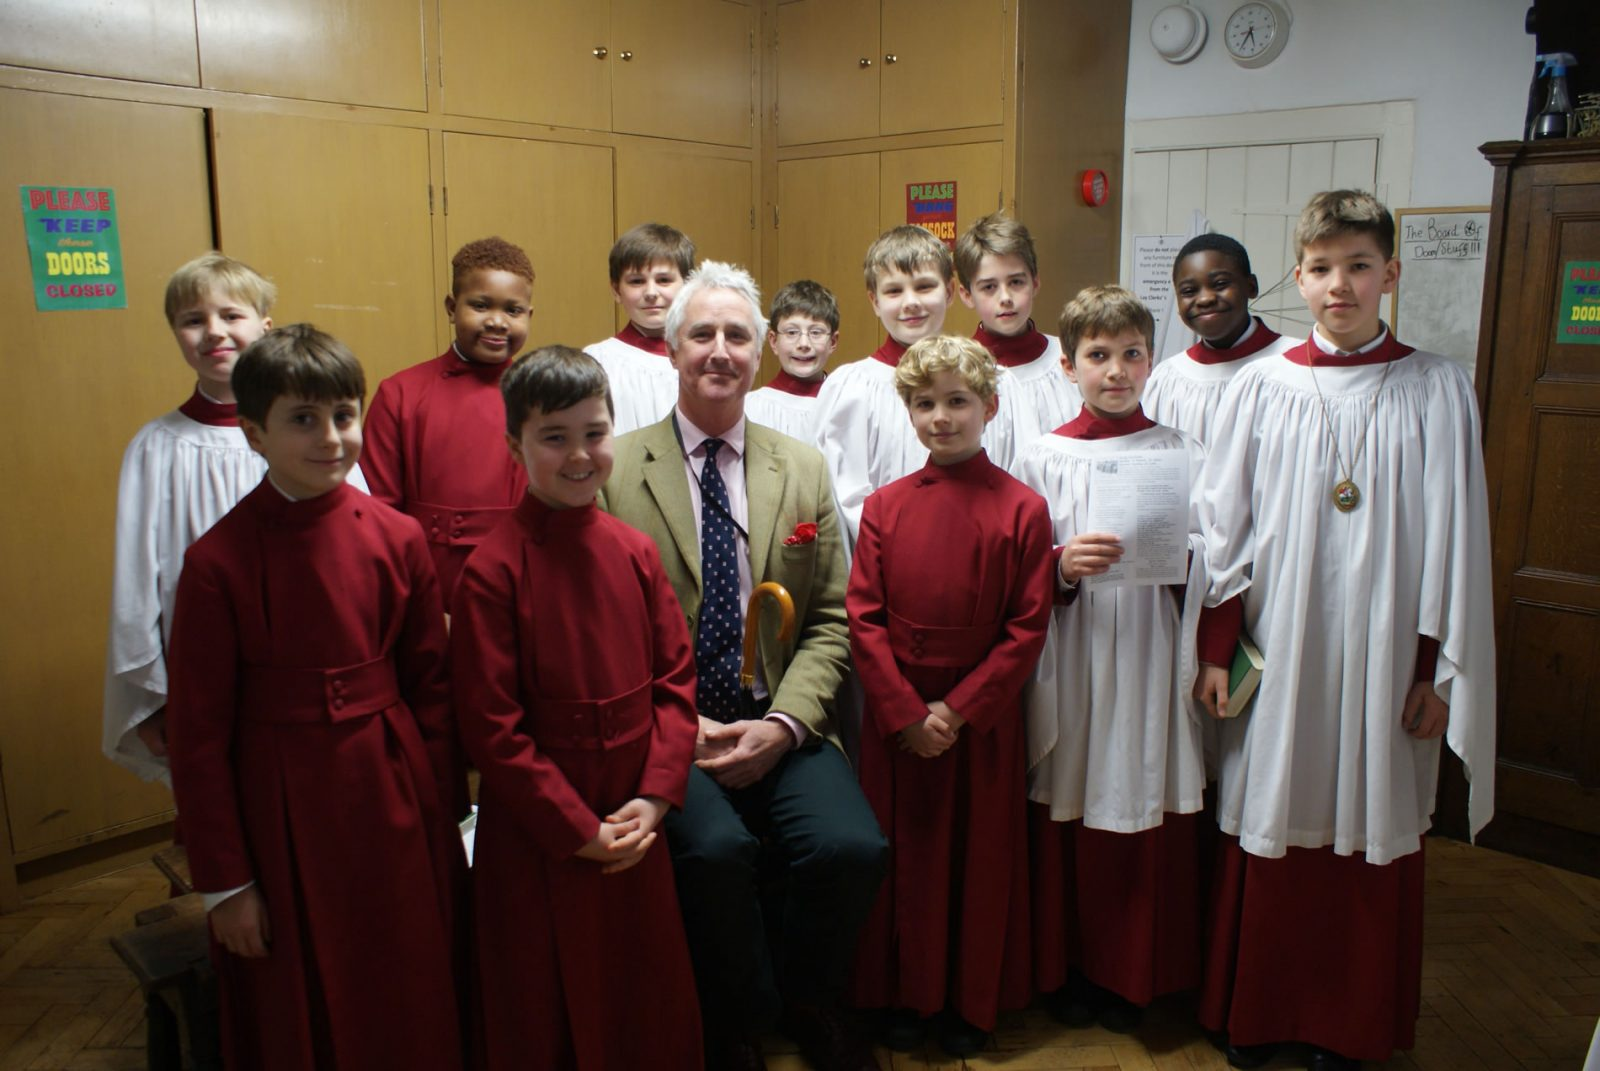 Choristers in the vestry